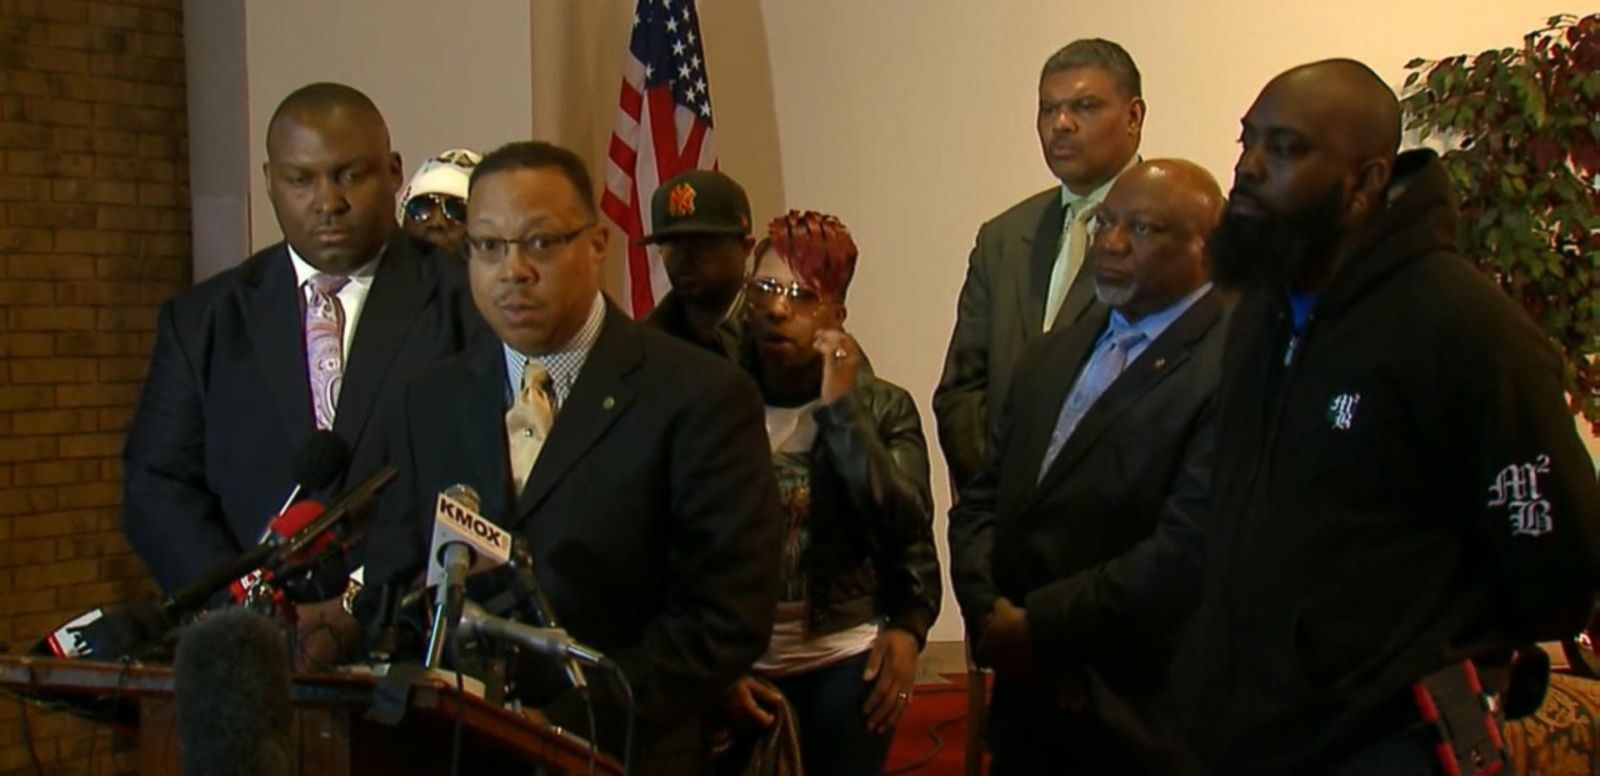 VIDEO: Michael Brown's family to file wrongful death suit against former Officer Darren Wilson.